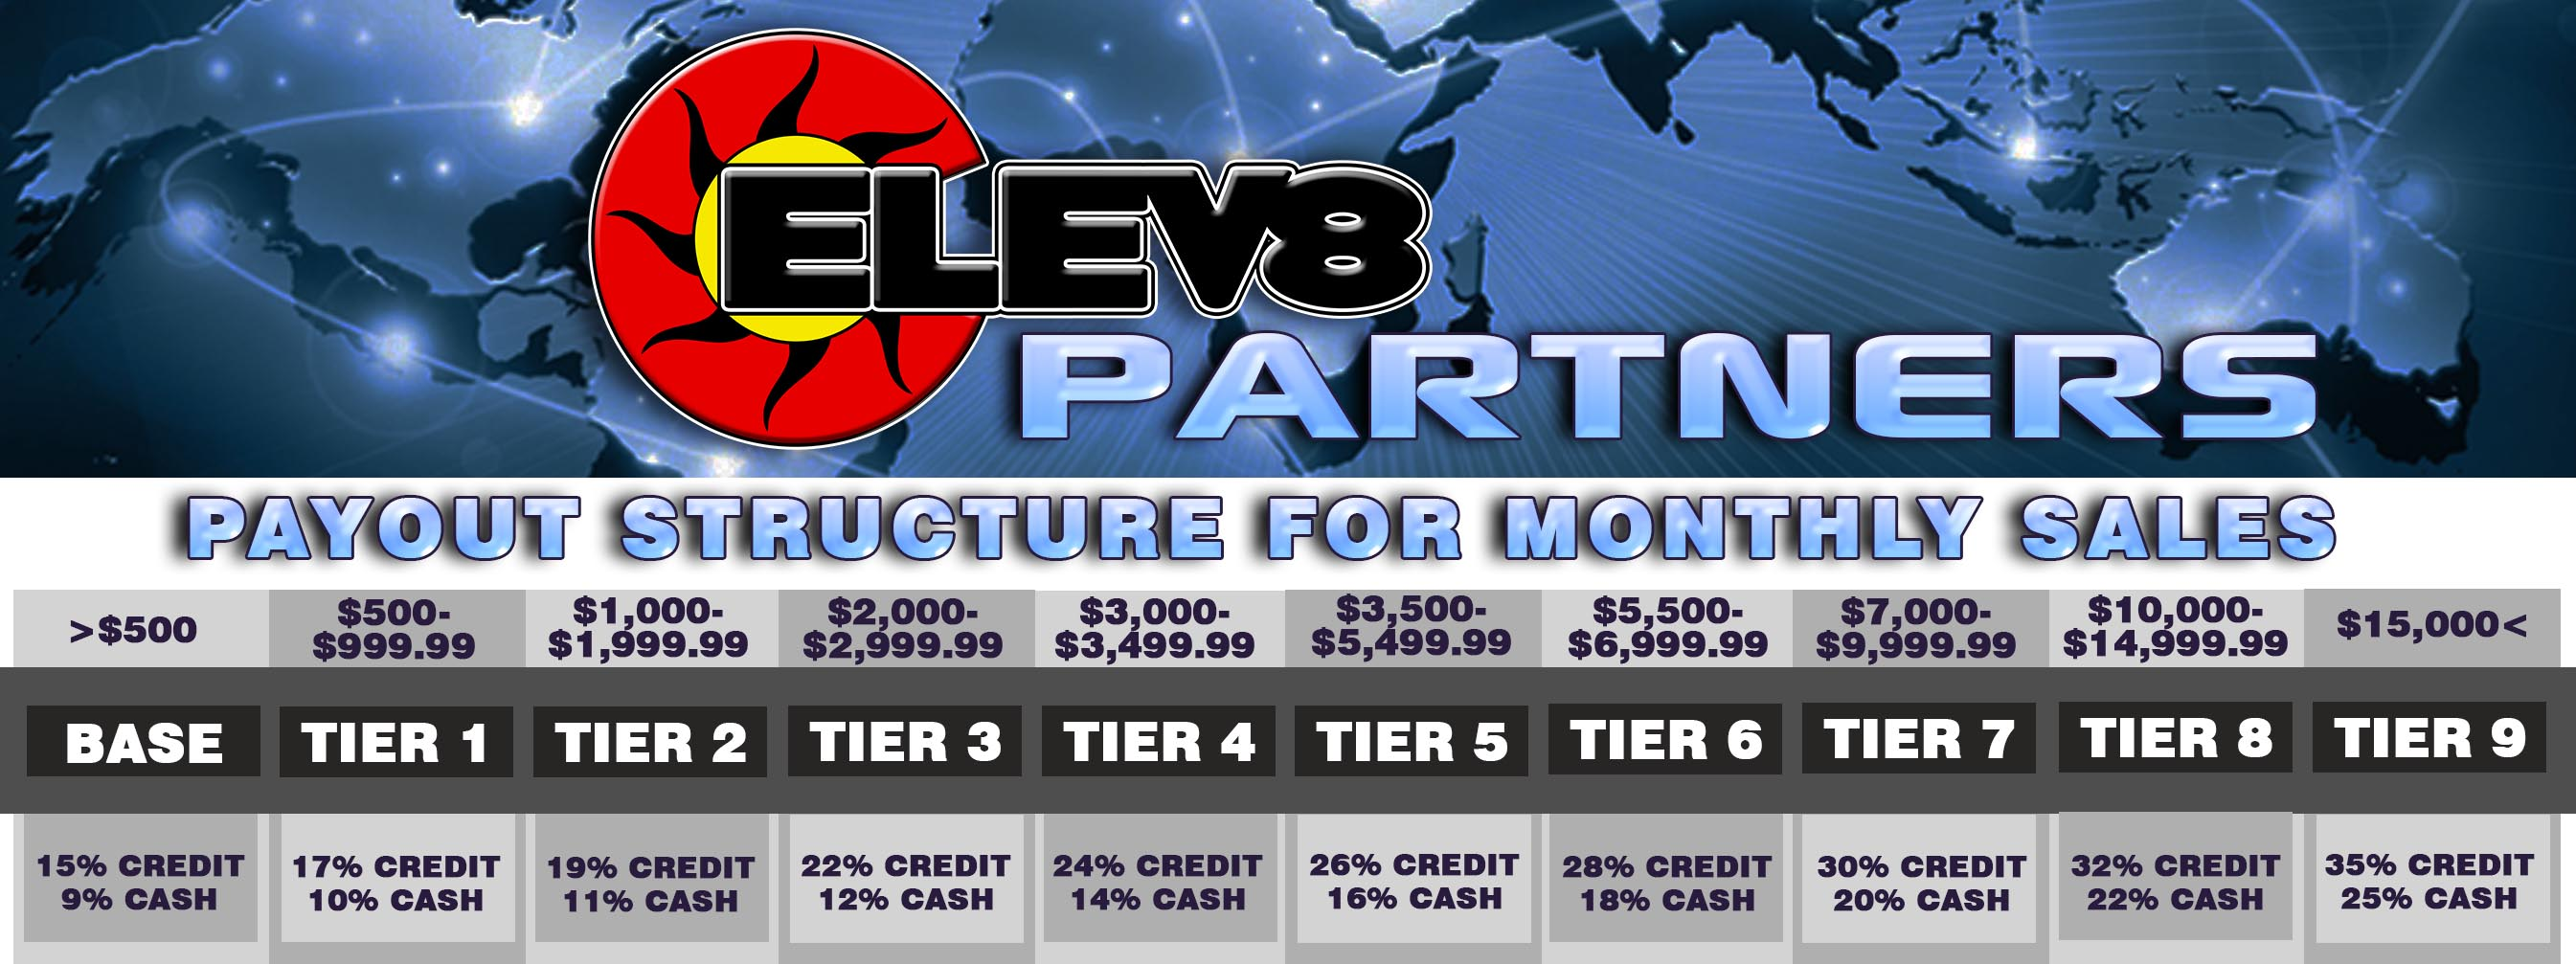 elev8-parnters-and-collaberators-pay-out-sheetv2.jpg